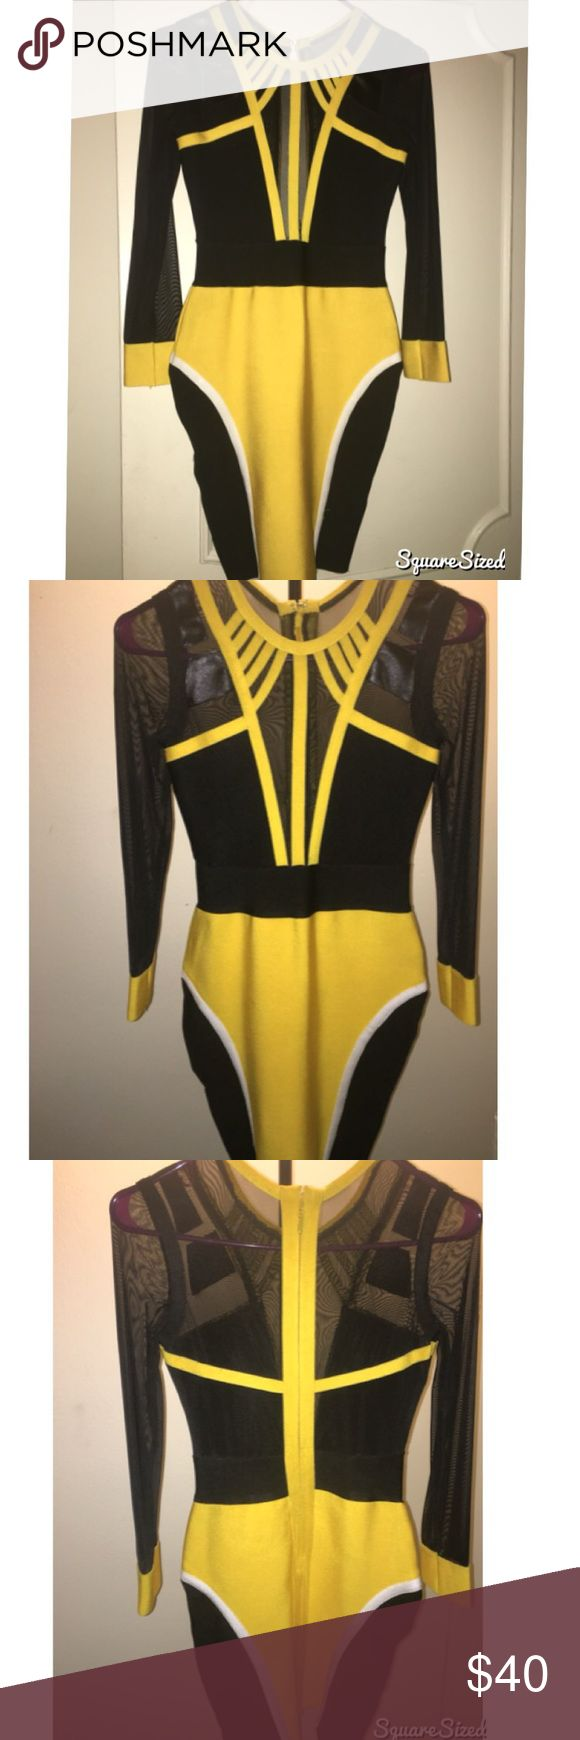 🔸New🔸Mesh Style Long Sleeve Bandage Dress✨ Leave a lasting impression in this high impact mesh Bandage Dress😻 Mesh long sleeves, mesh bust panels, Color: Bright yellow💛 and Black⚫️, hits above the knee, covered centered back zipper with hook and eye closure. Material: Rayon, Nylon & Spandex. Tried item on once but never wore outdoors👆🏽🚨🚨🚨🚨🚨🚨🚨🚨🚨🚨🚨🚨🚨🚨🚨 Dresses Long Sleeve